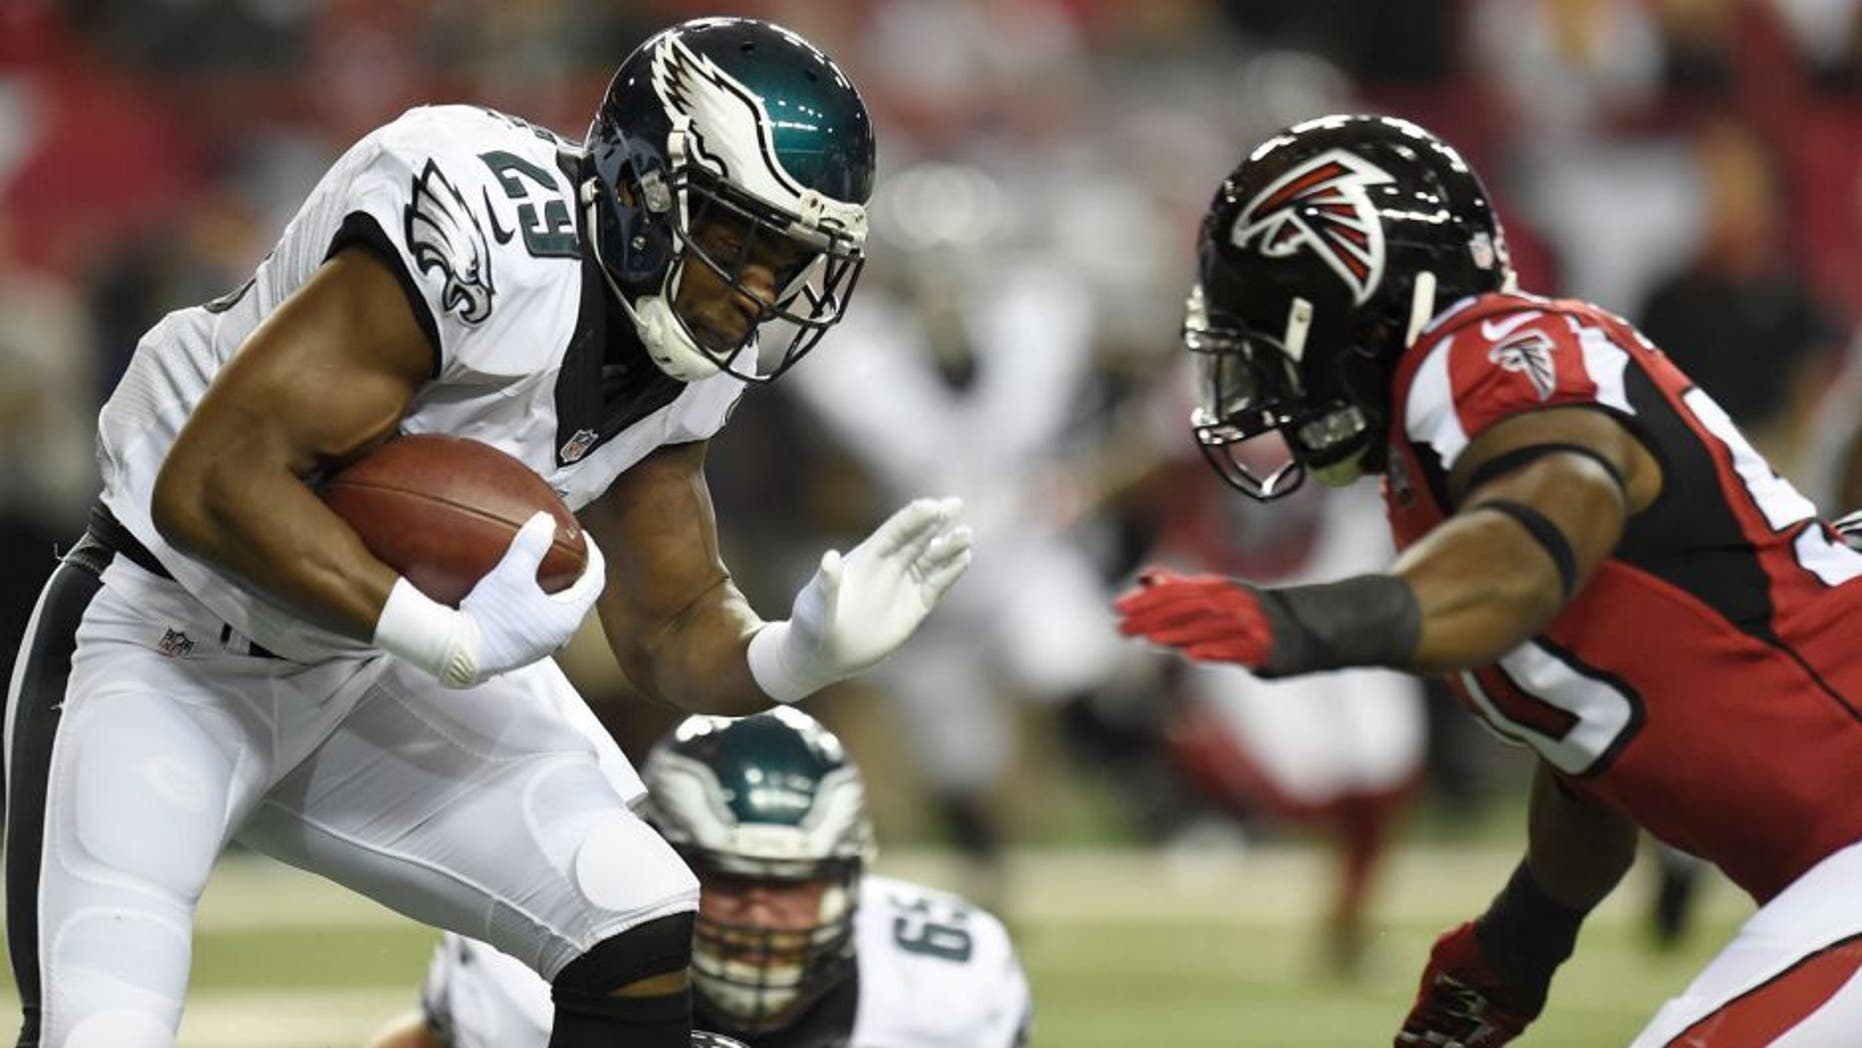 Sep 14, 2015; Atlanta, GA, USA; Philadelphia Eagles running back DeMarco Murray (29) carries the ball as he is chased by Atlanta Falcons linebacker O'Brien Schofield (50) in the first quarter at the Georgia Dome. Mandatory Credit: Dale Zanine-USA TODAY Sports